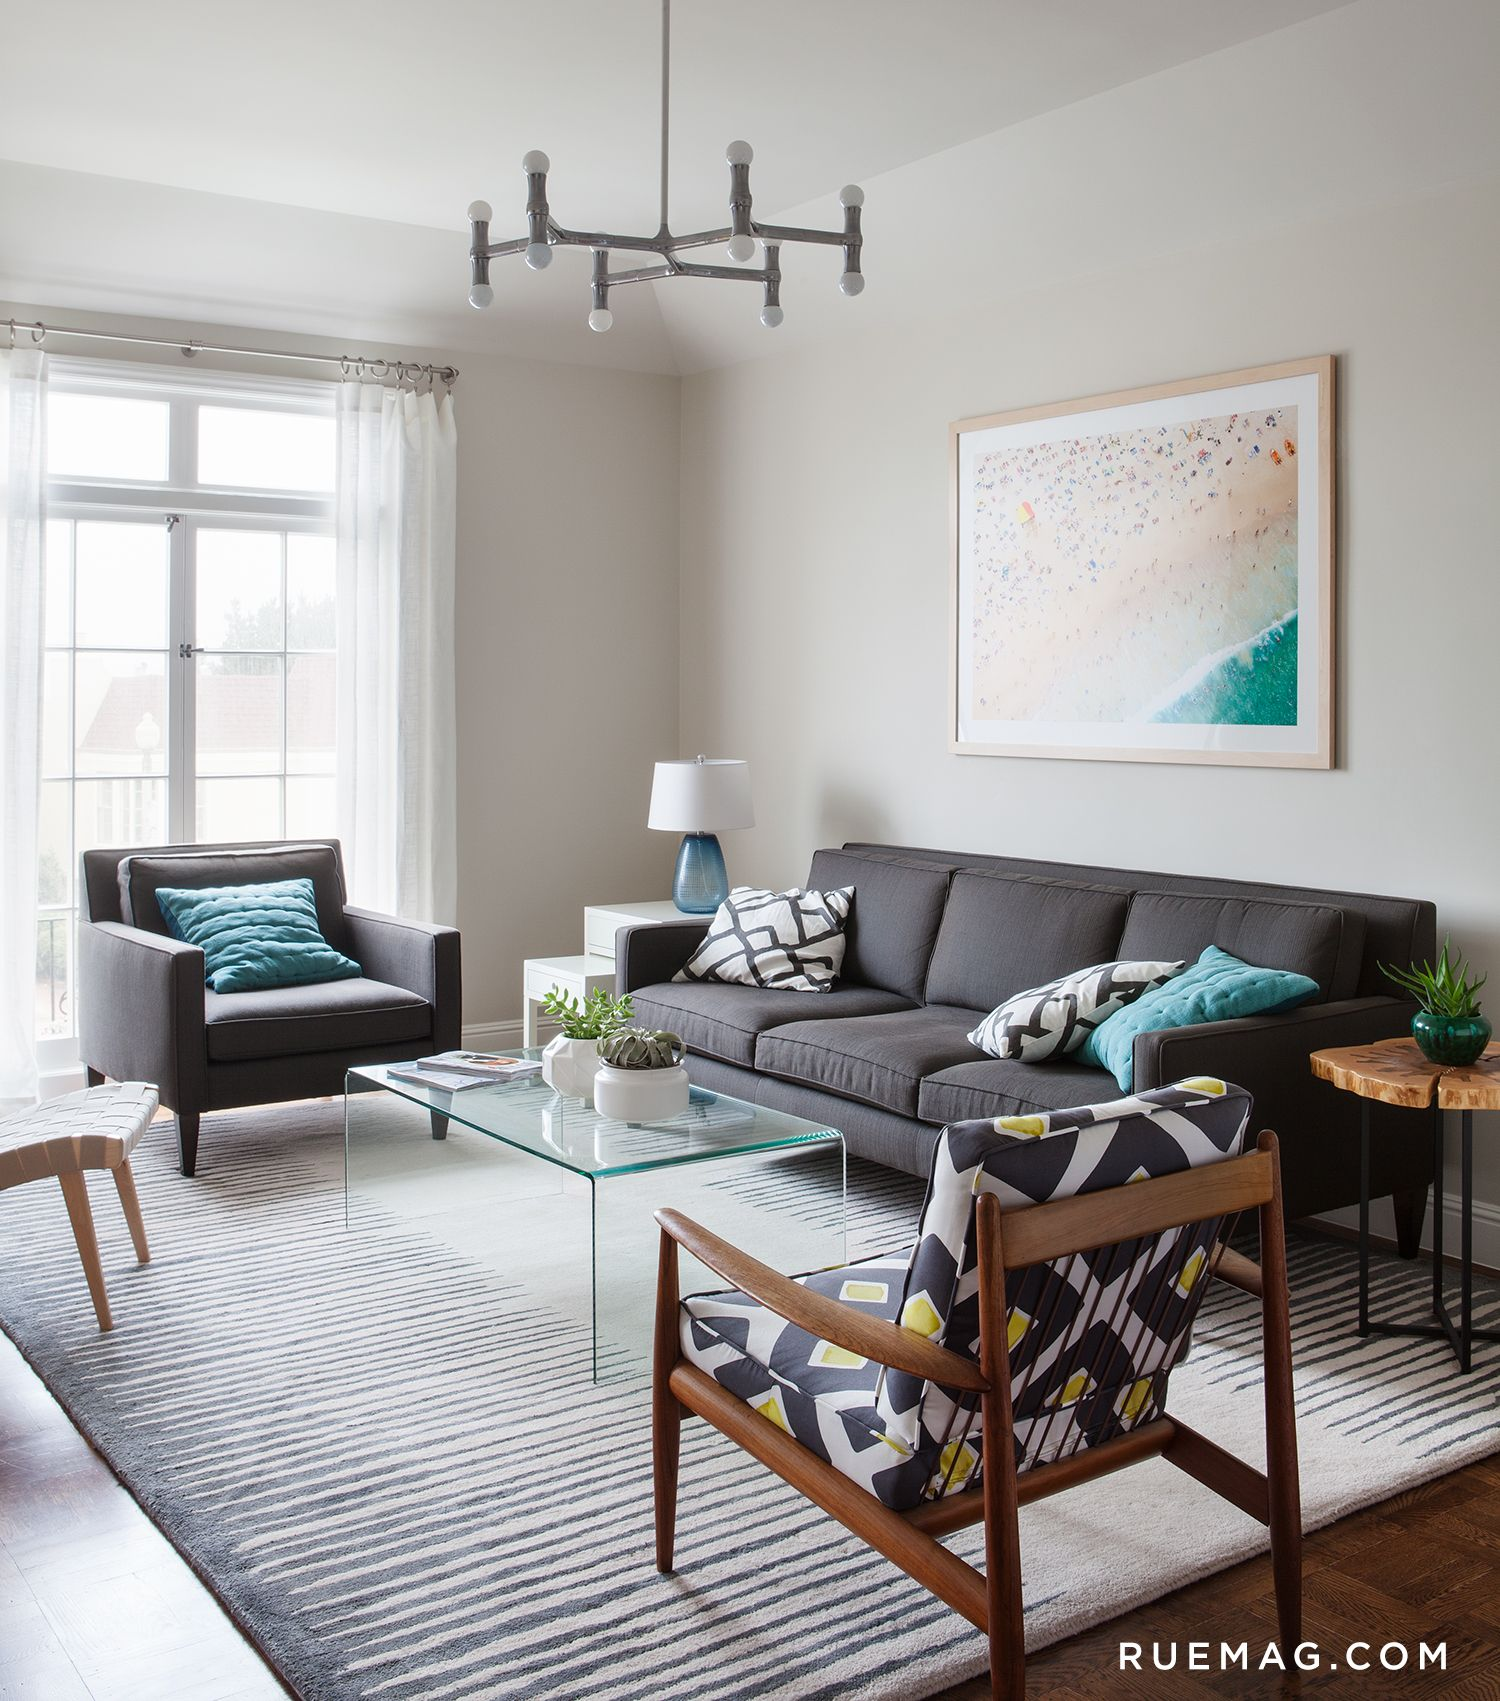 Living Room With Turquoise Accent Wall: Living Room With Benjamin Moore Edgecomb Gray Walls, Gray